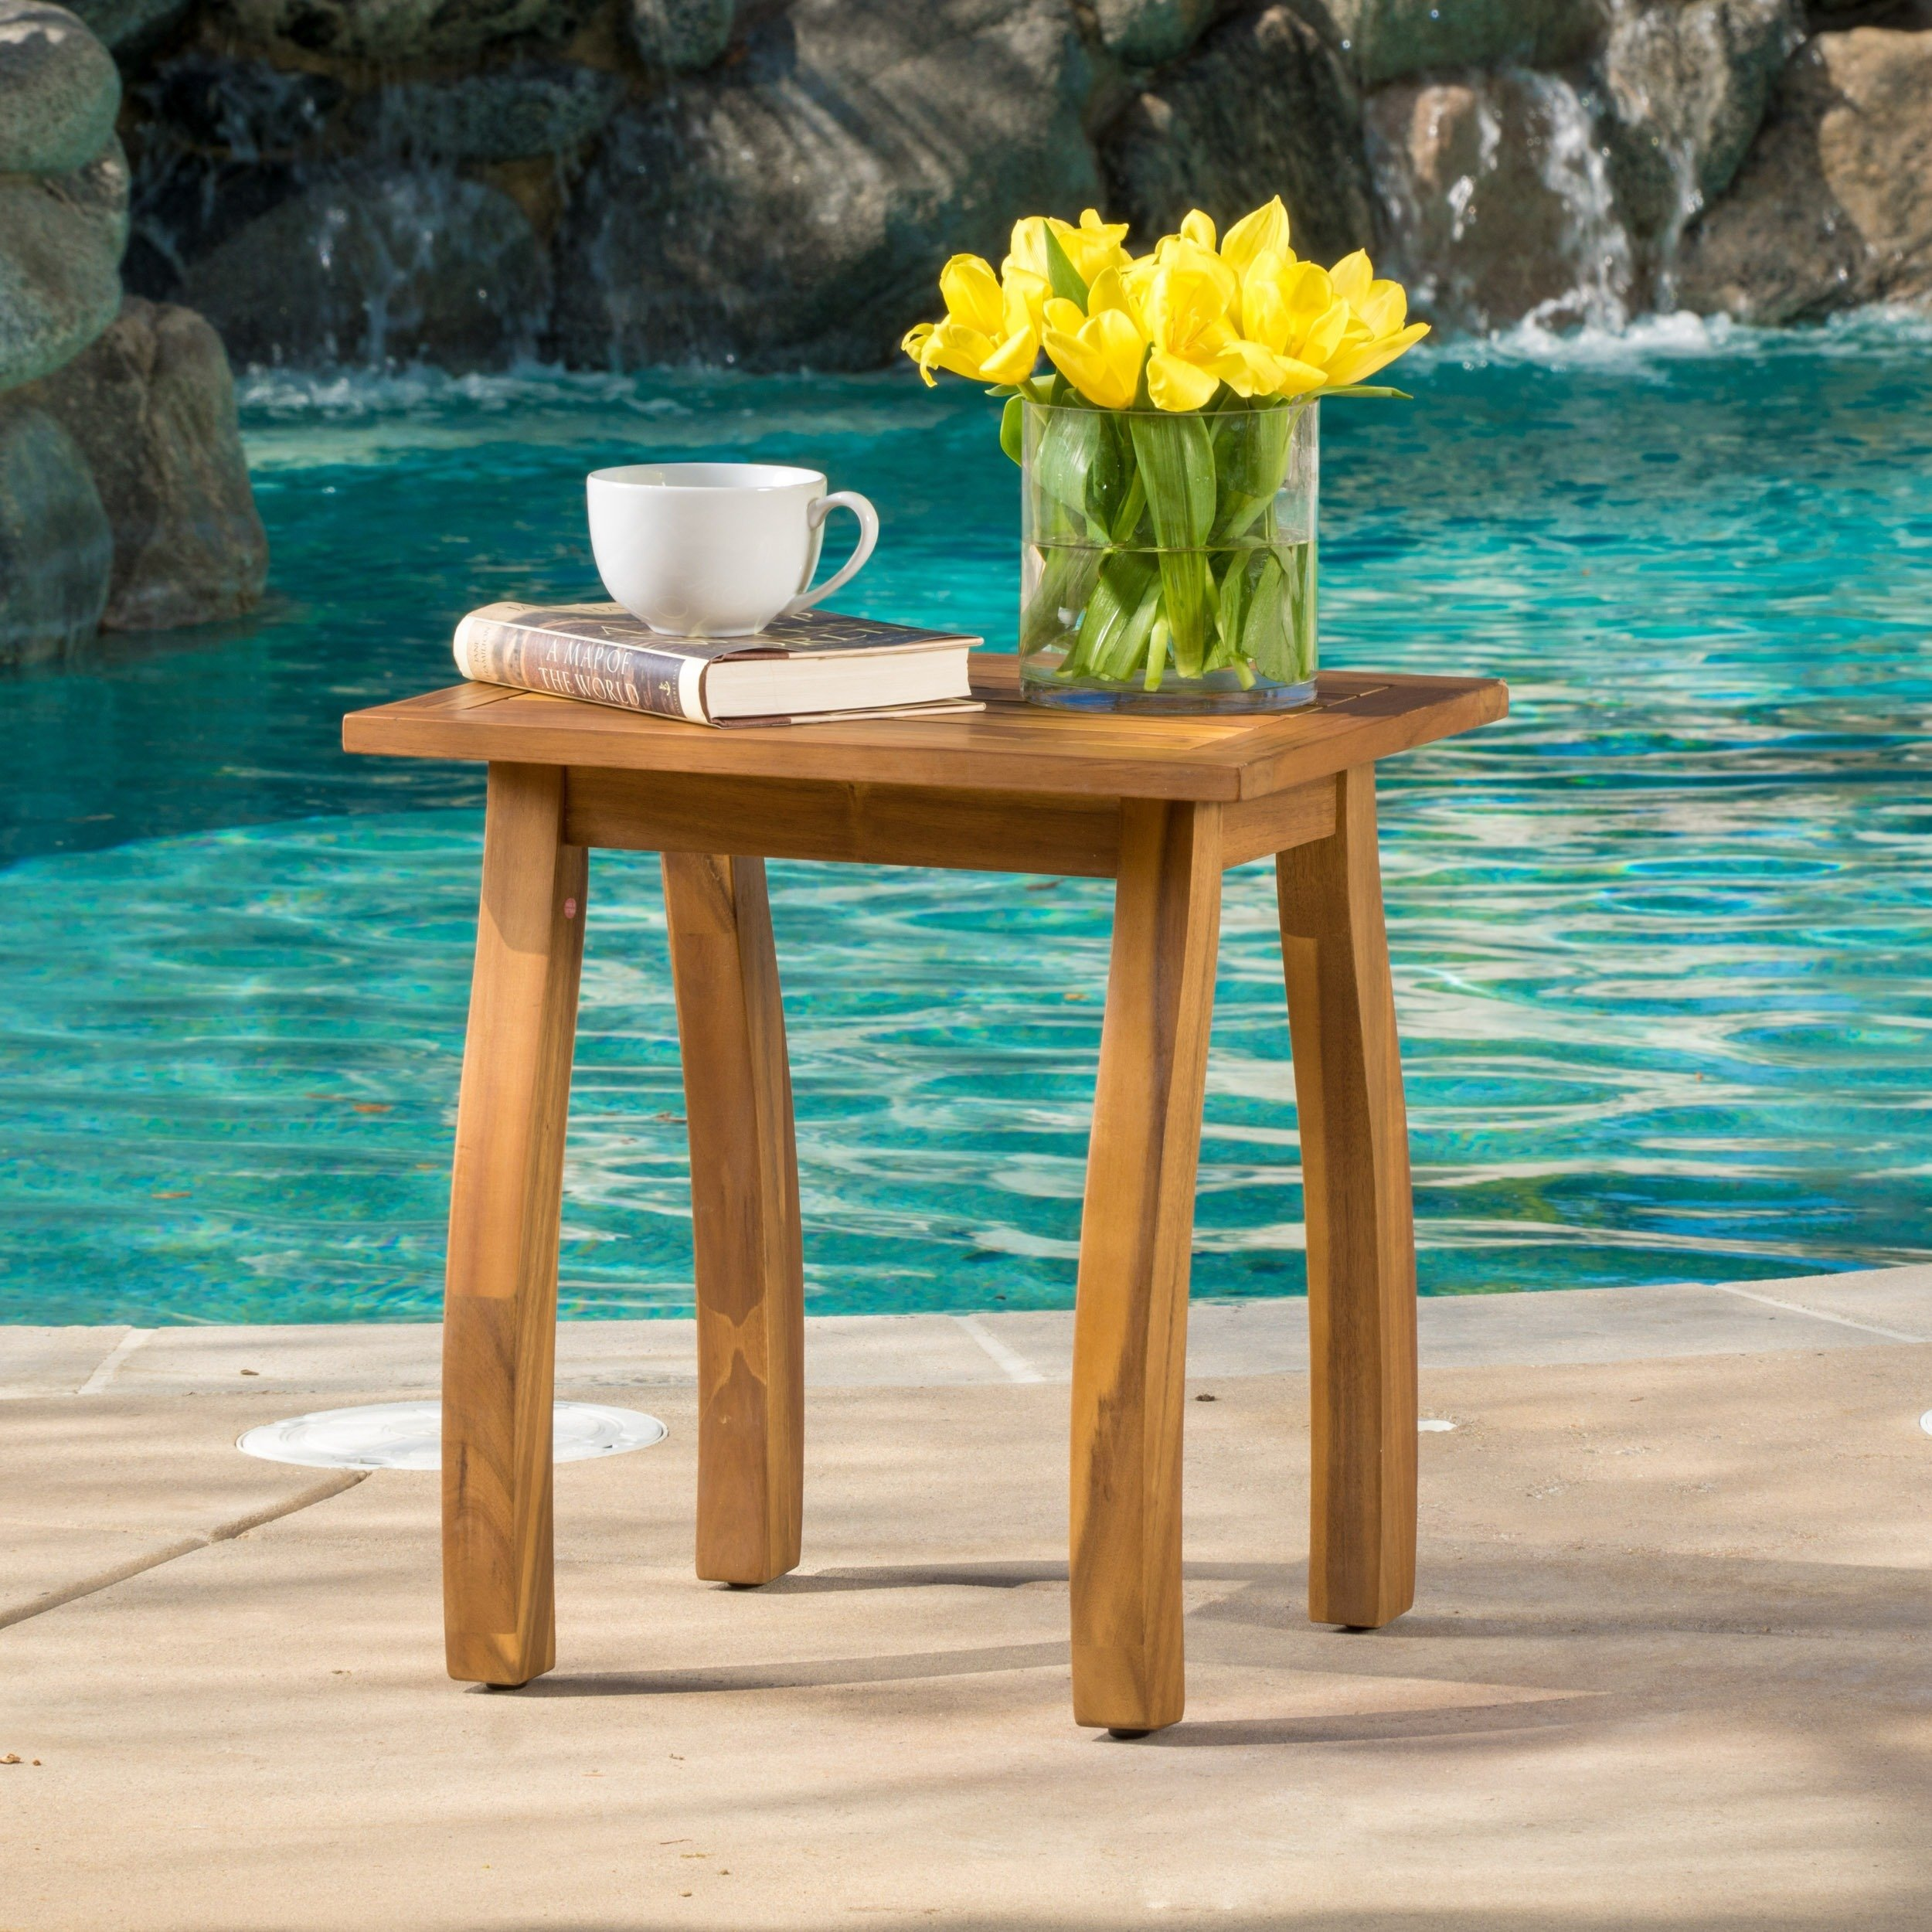 lucca outdoor acacia wood side table christopher knight home free shipping today ikea pot rack small garden and chairs drop leaf coffee modern sets west elm acorn round furniture